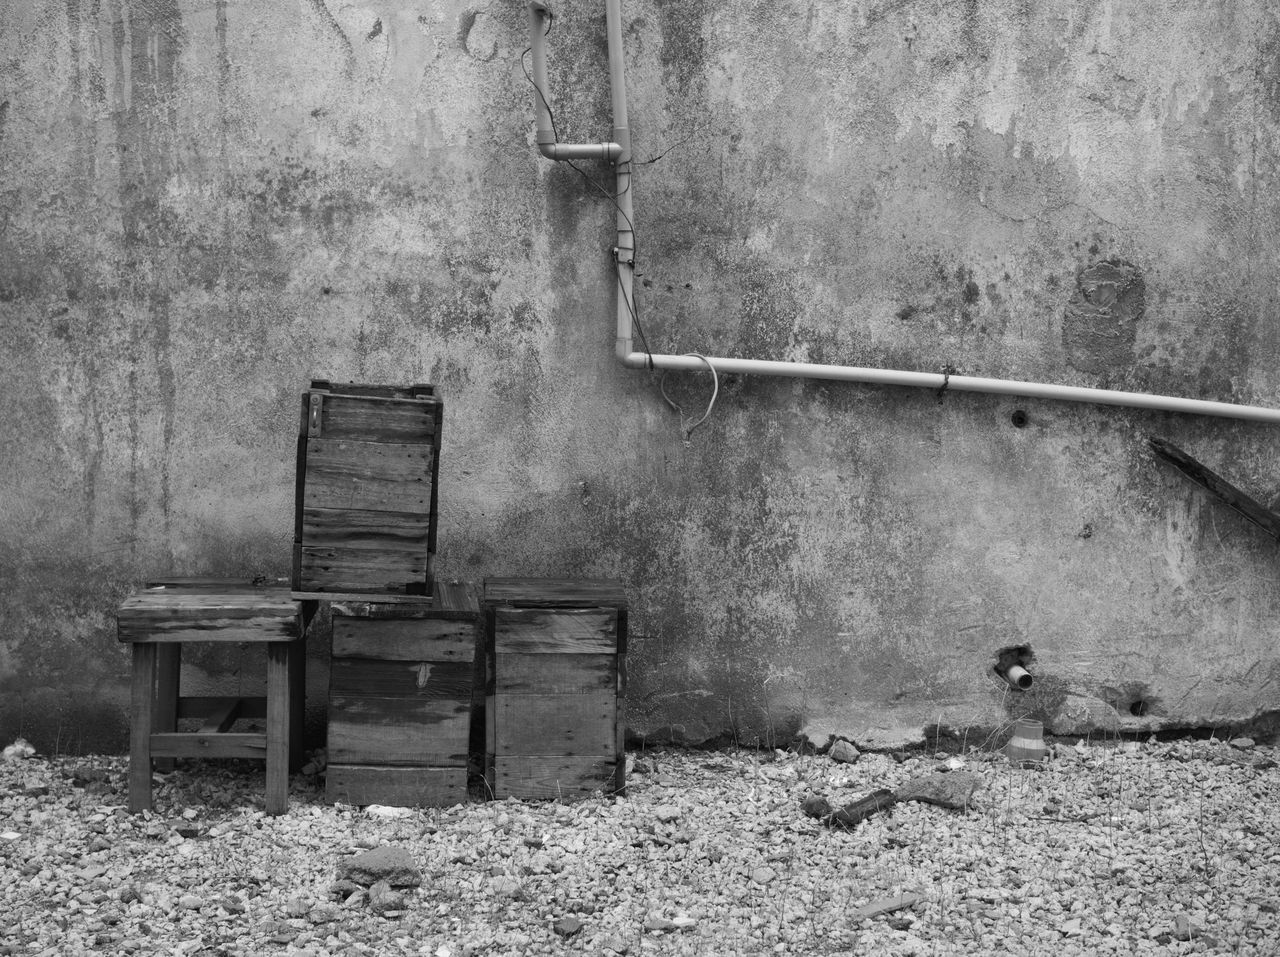 Table And Box On Field Against Wall